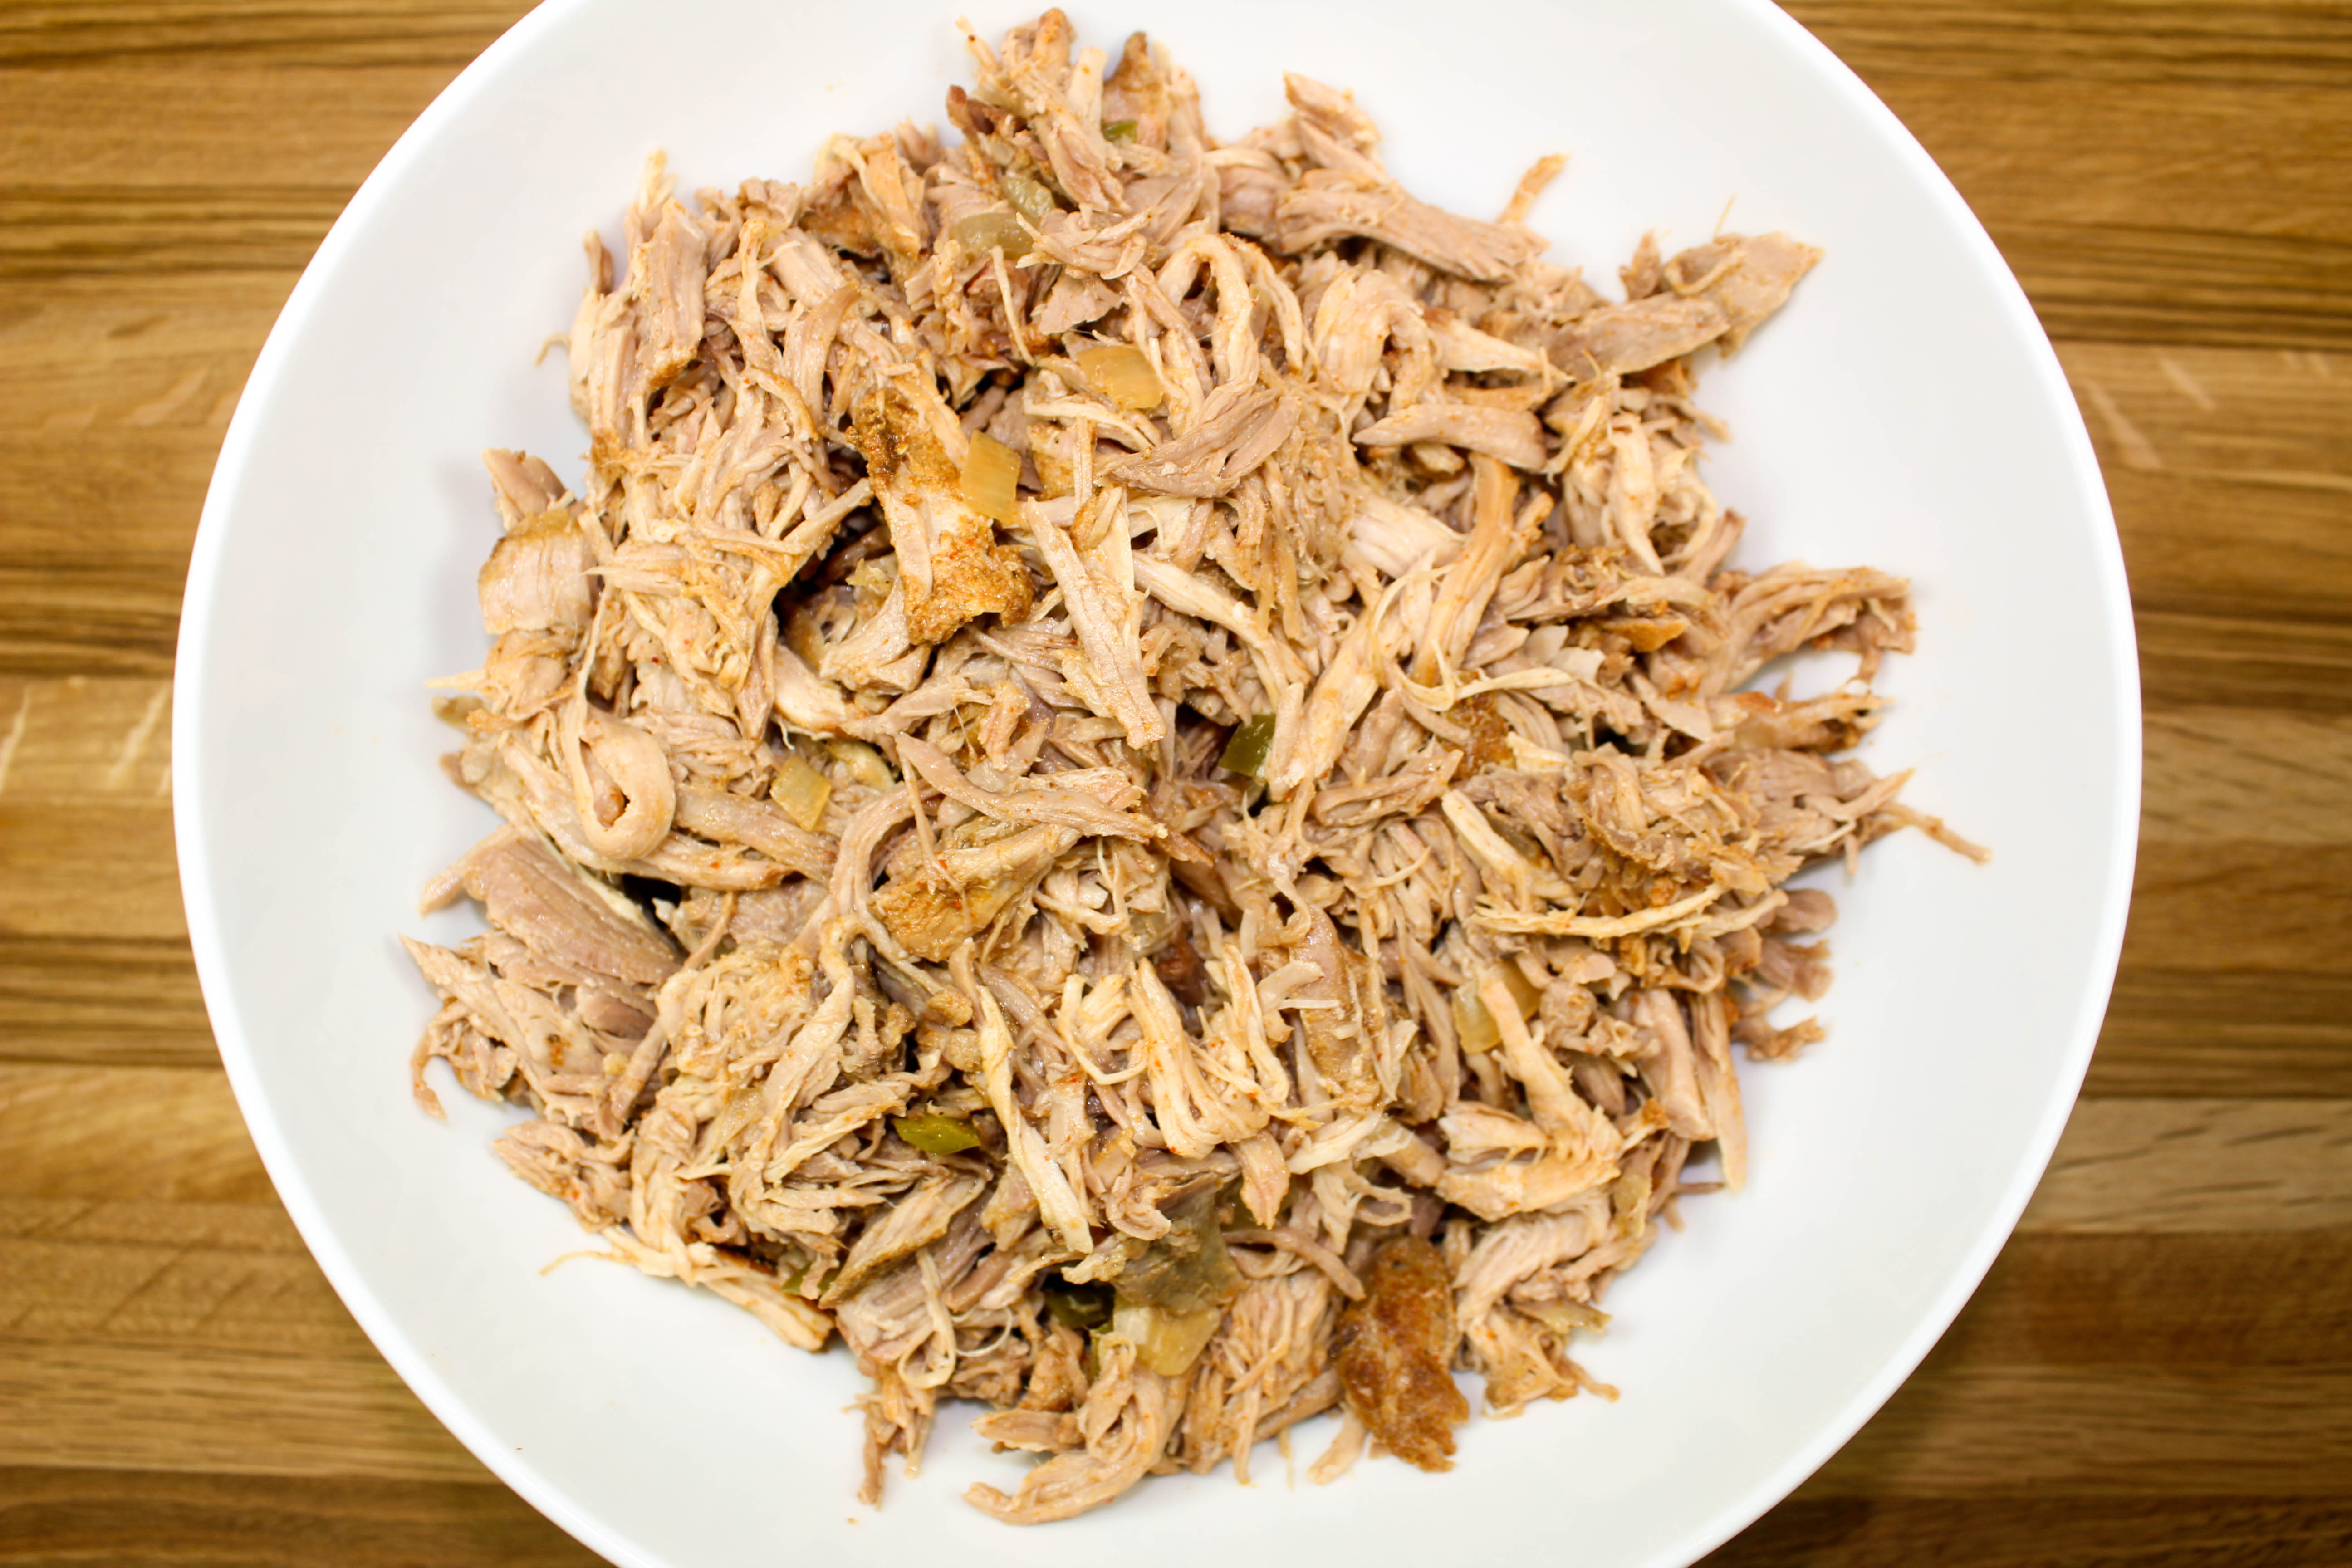 Slow Cooker Mexican Spiced Pulled Pork is perfect for pork inspired recipes like tacos, stews, enchiladas, pizza, and more! Weight Watchers friendly recipe! www.bitesofflavor.com